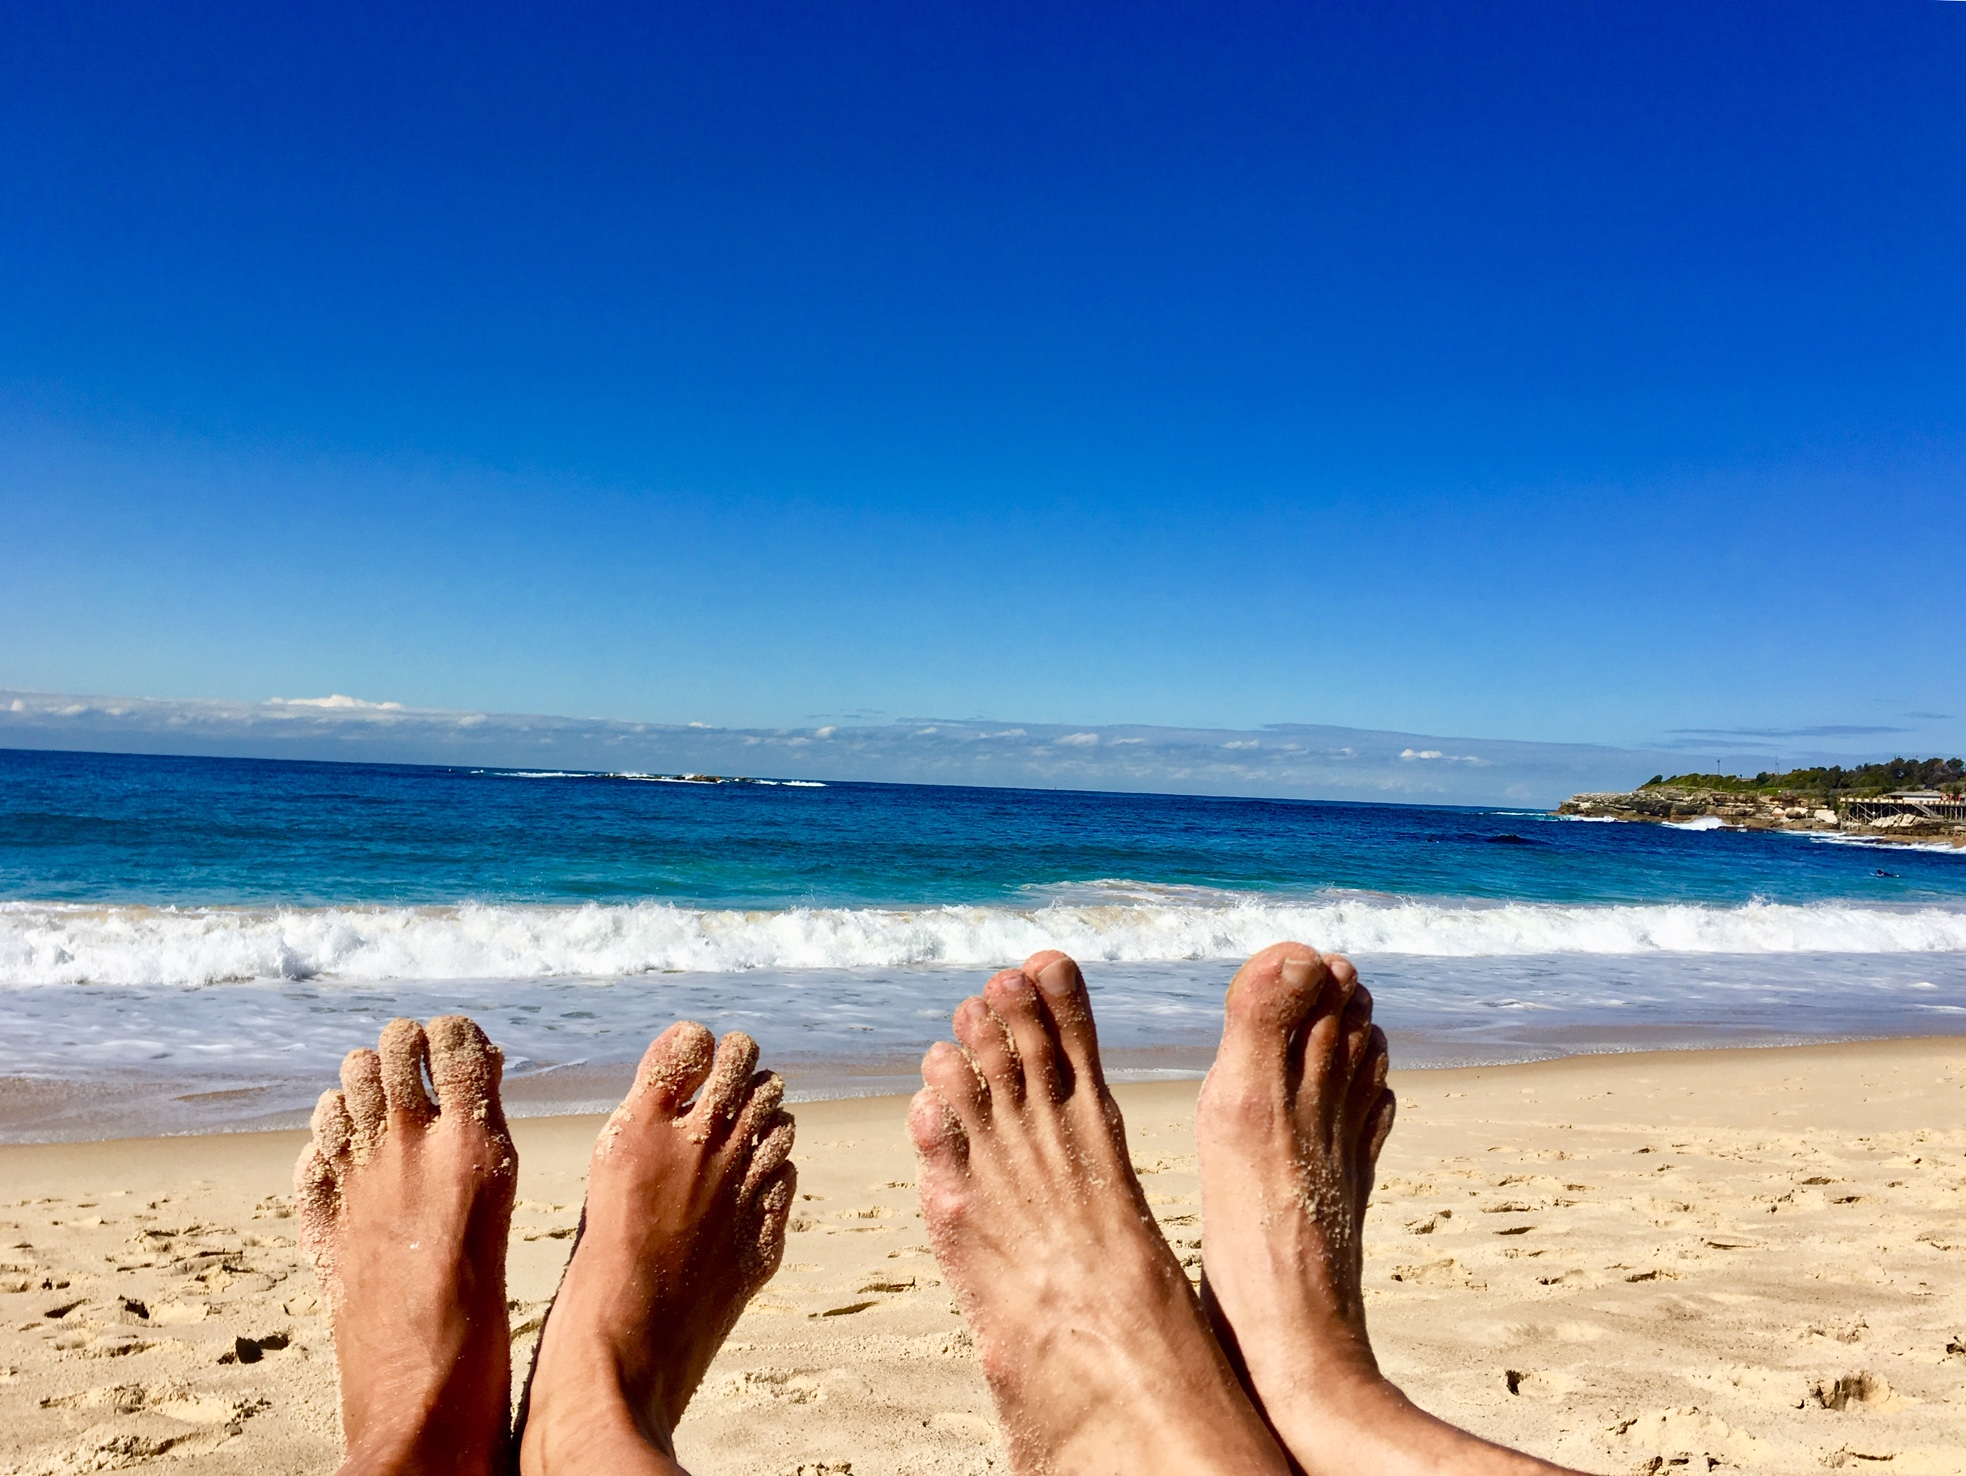 First thing first as we touch the Australian soil. Landing our bare feet on the sand and the ocean at Coogee Beach, Sydney, Australia